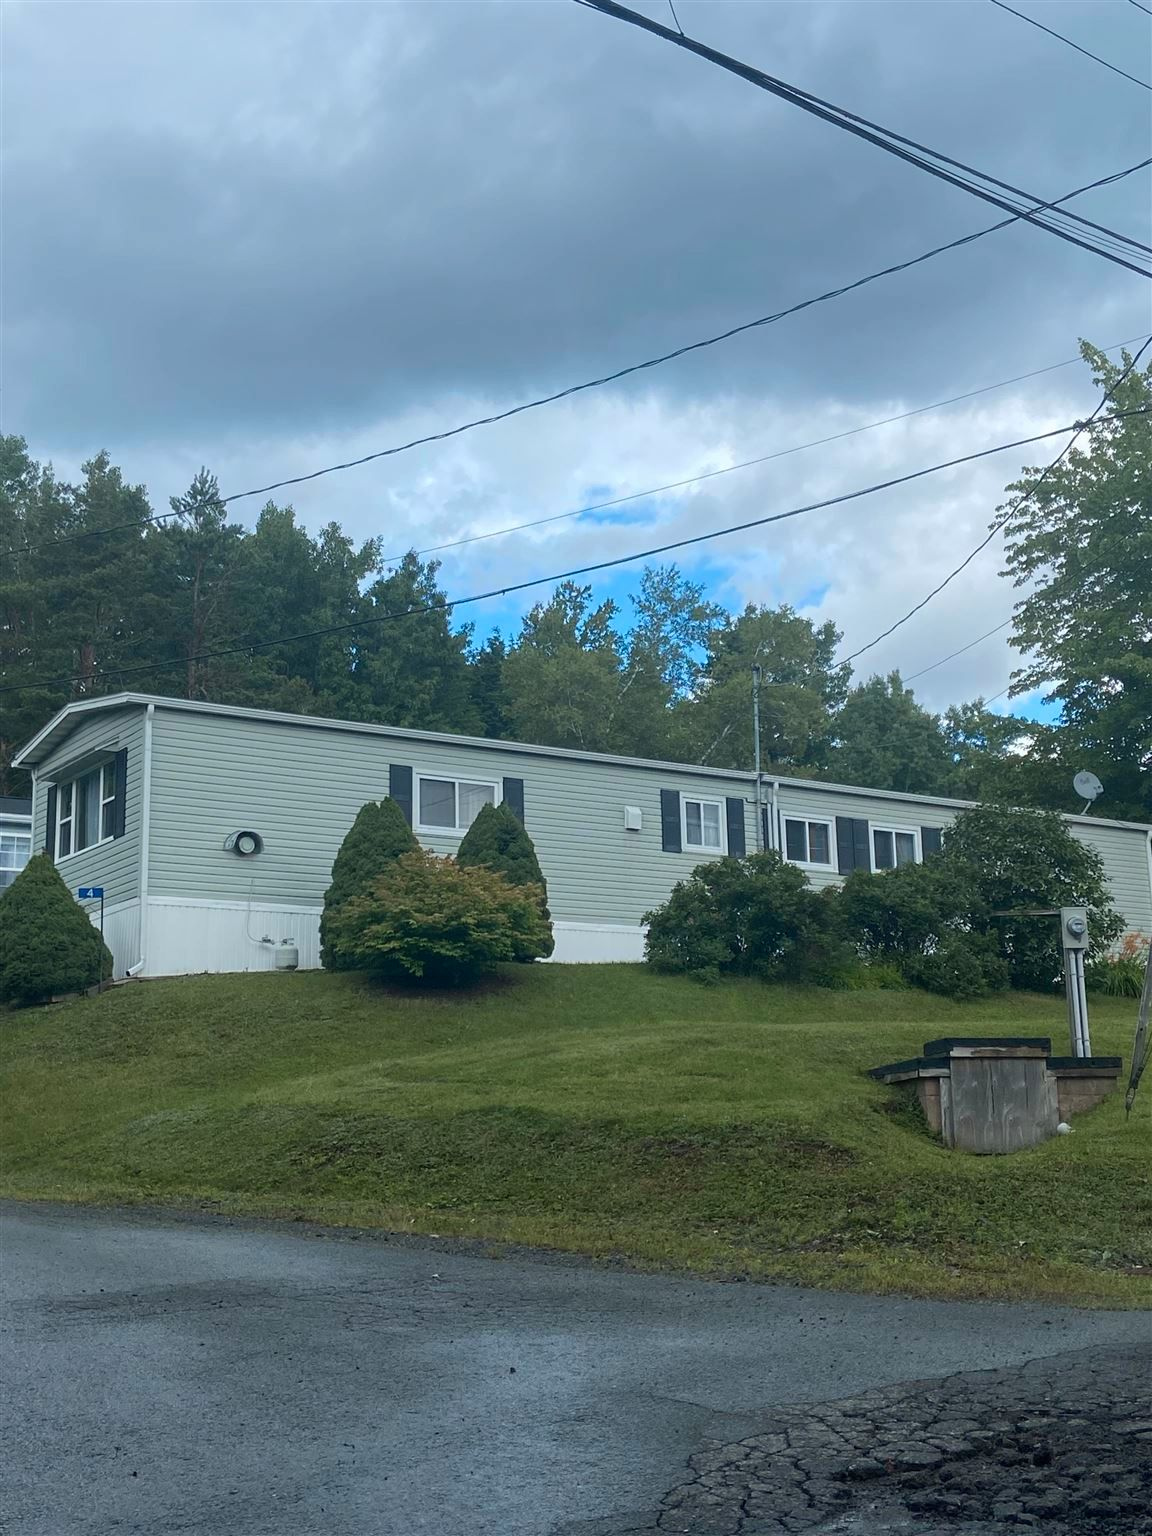 Main Photo: 4 Pine Street in Plymouth: 108-Rural Pictou County Residential for sale (Northern Region)  : MLS®# 202119566